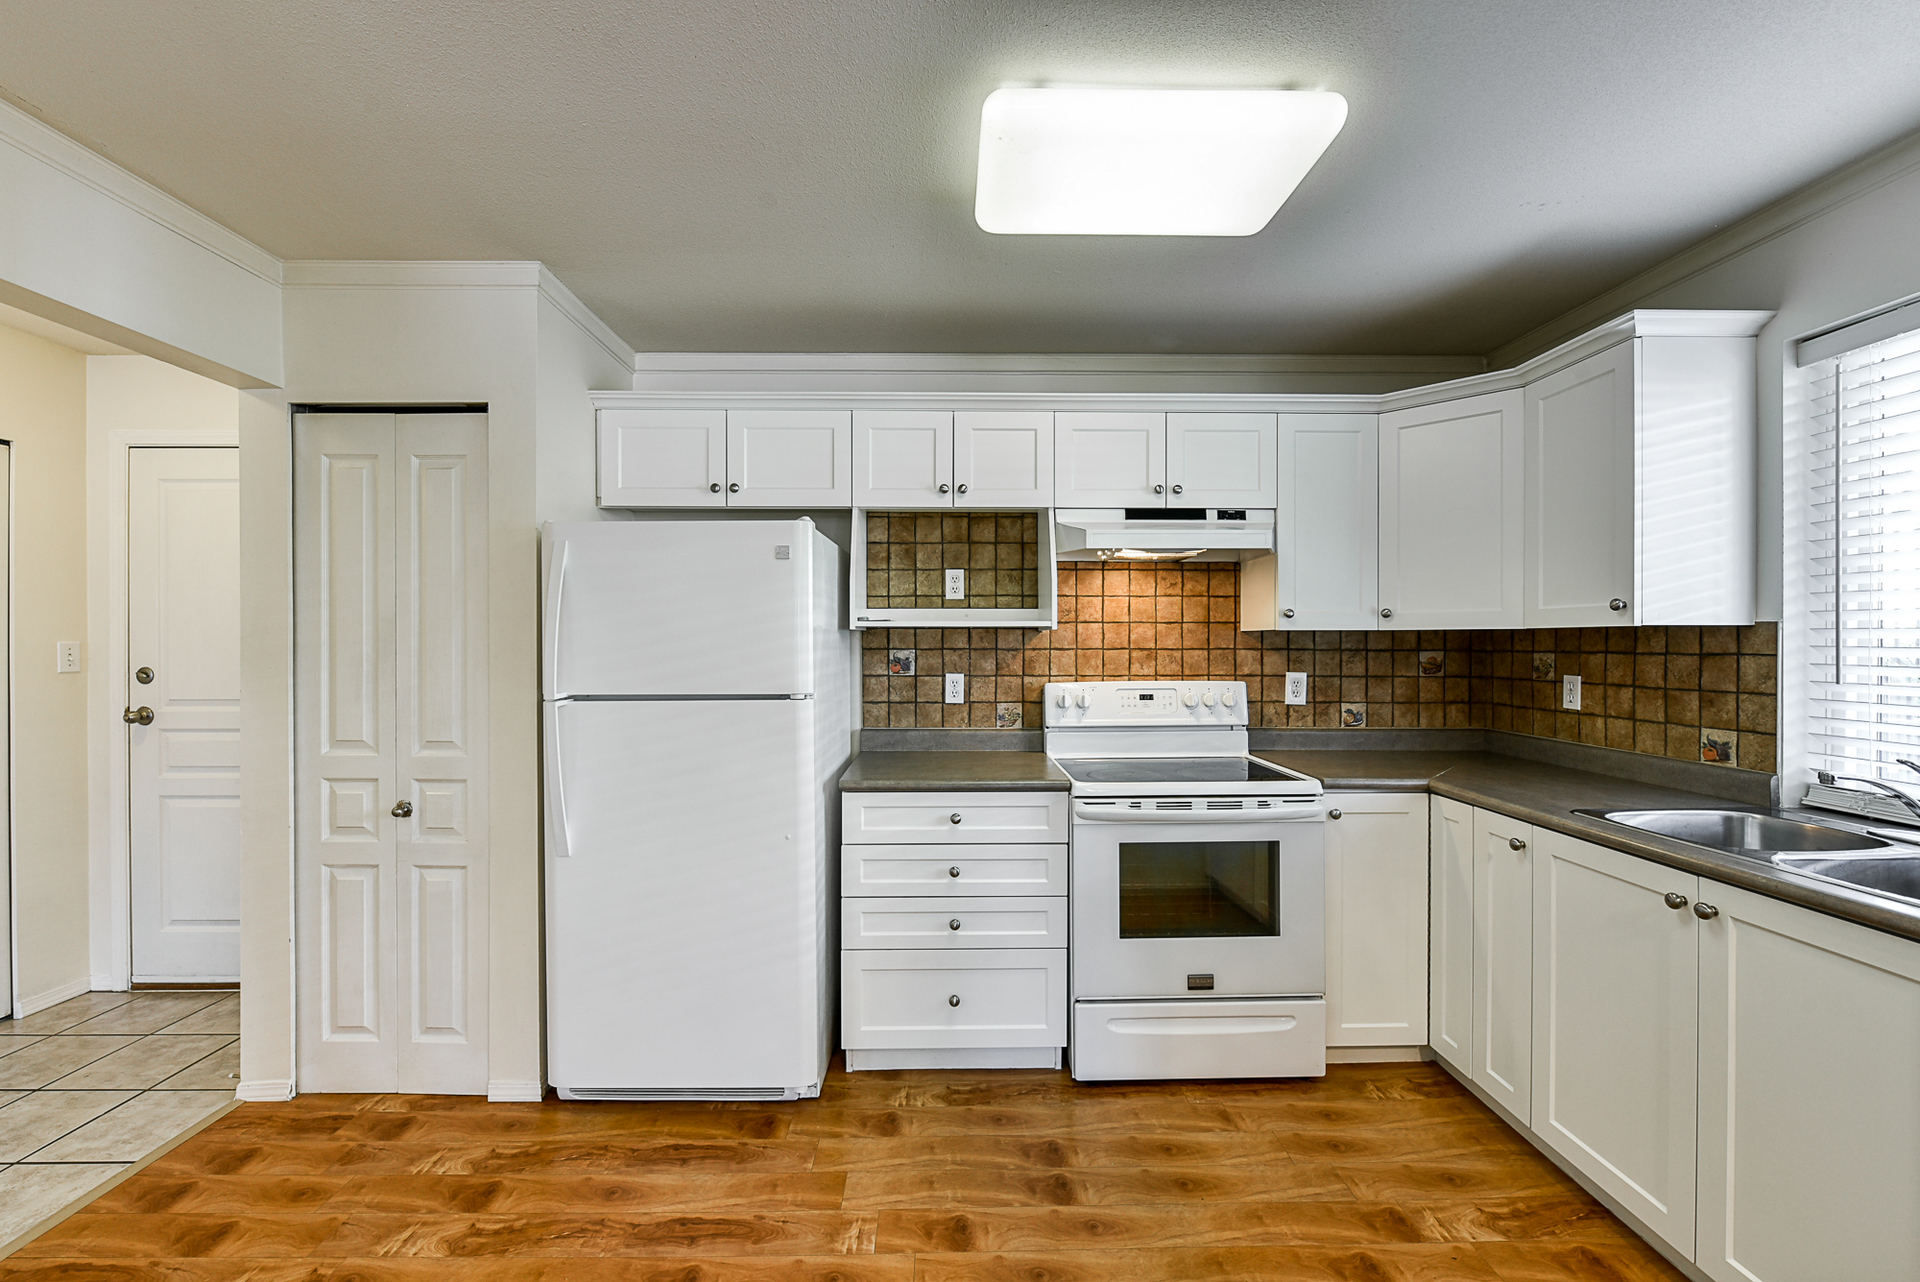 unit-110-33480-george-ferguson-way-abbotsford-10 at #110 - 33480 George Ferguson Way, Central Abbotsford, Abbotsford